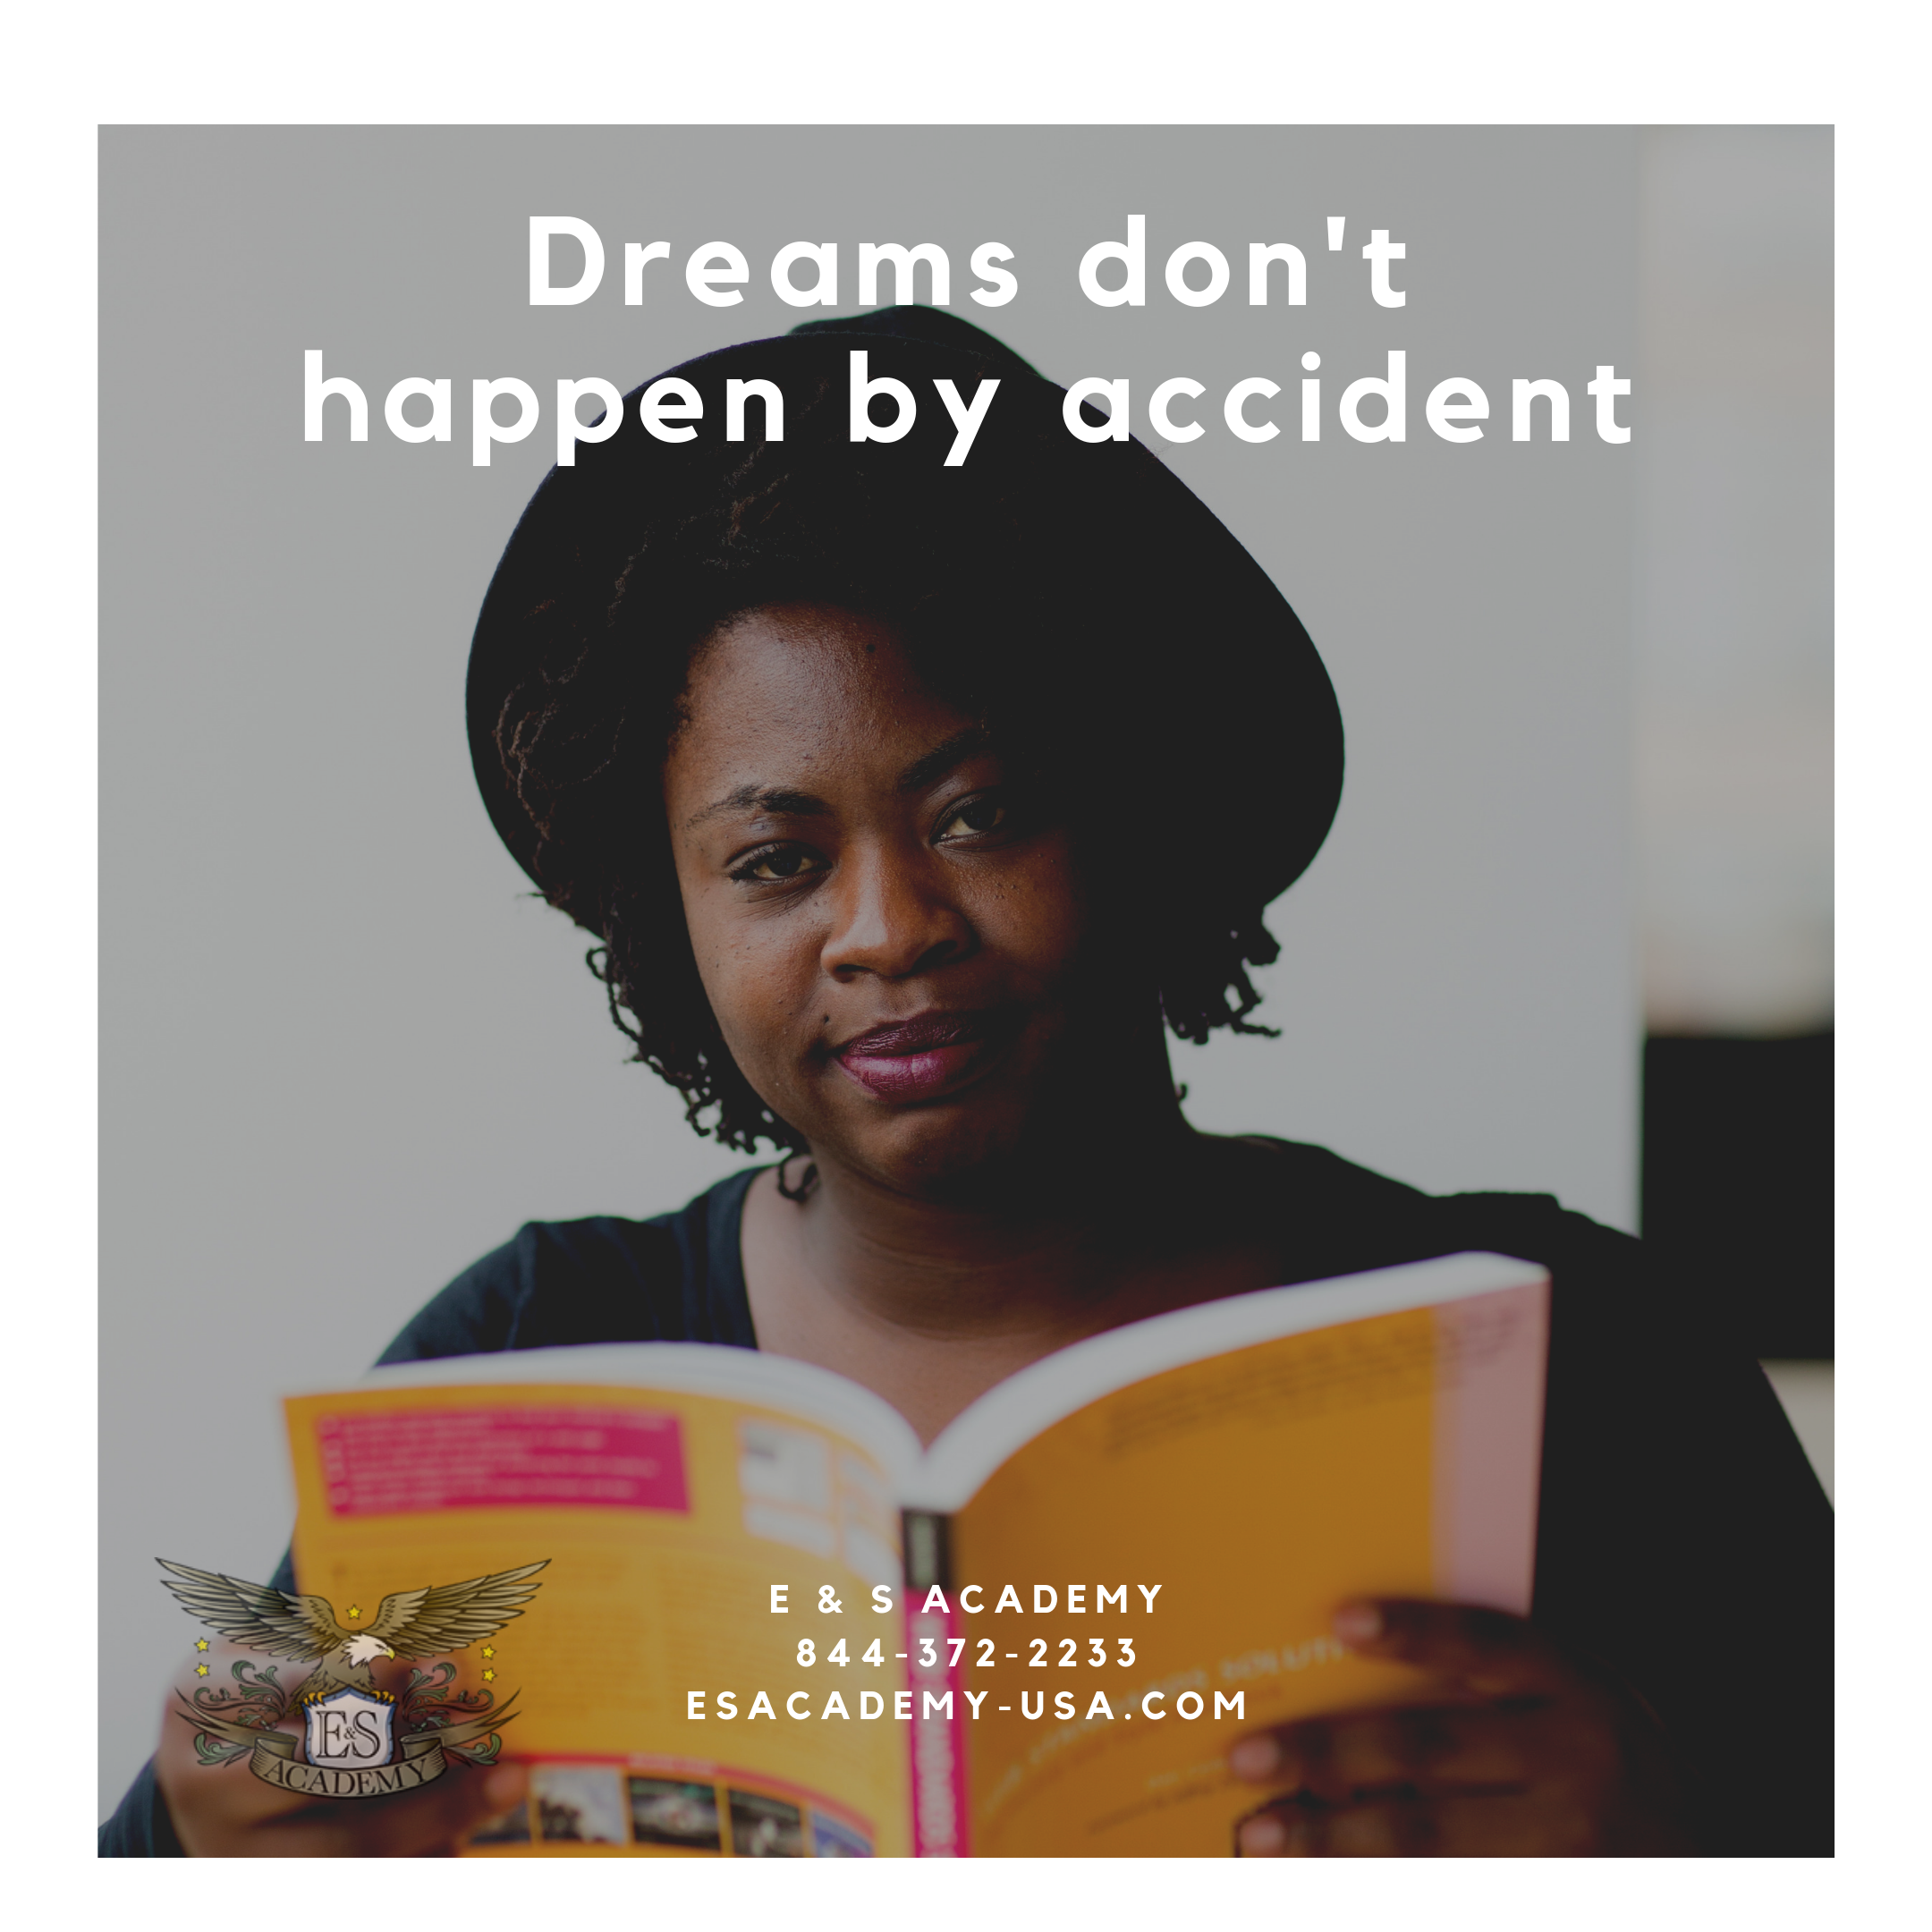 Dream's don't happen by accident! Are you looking for a new career?